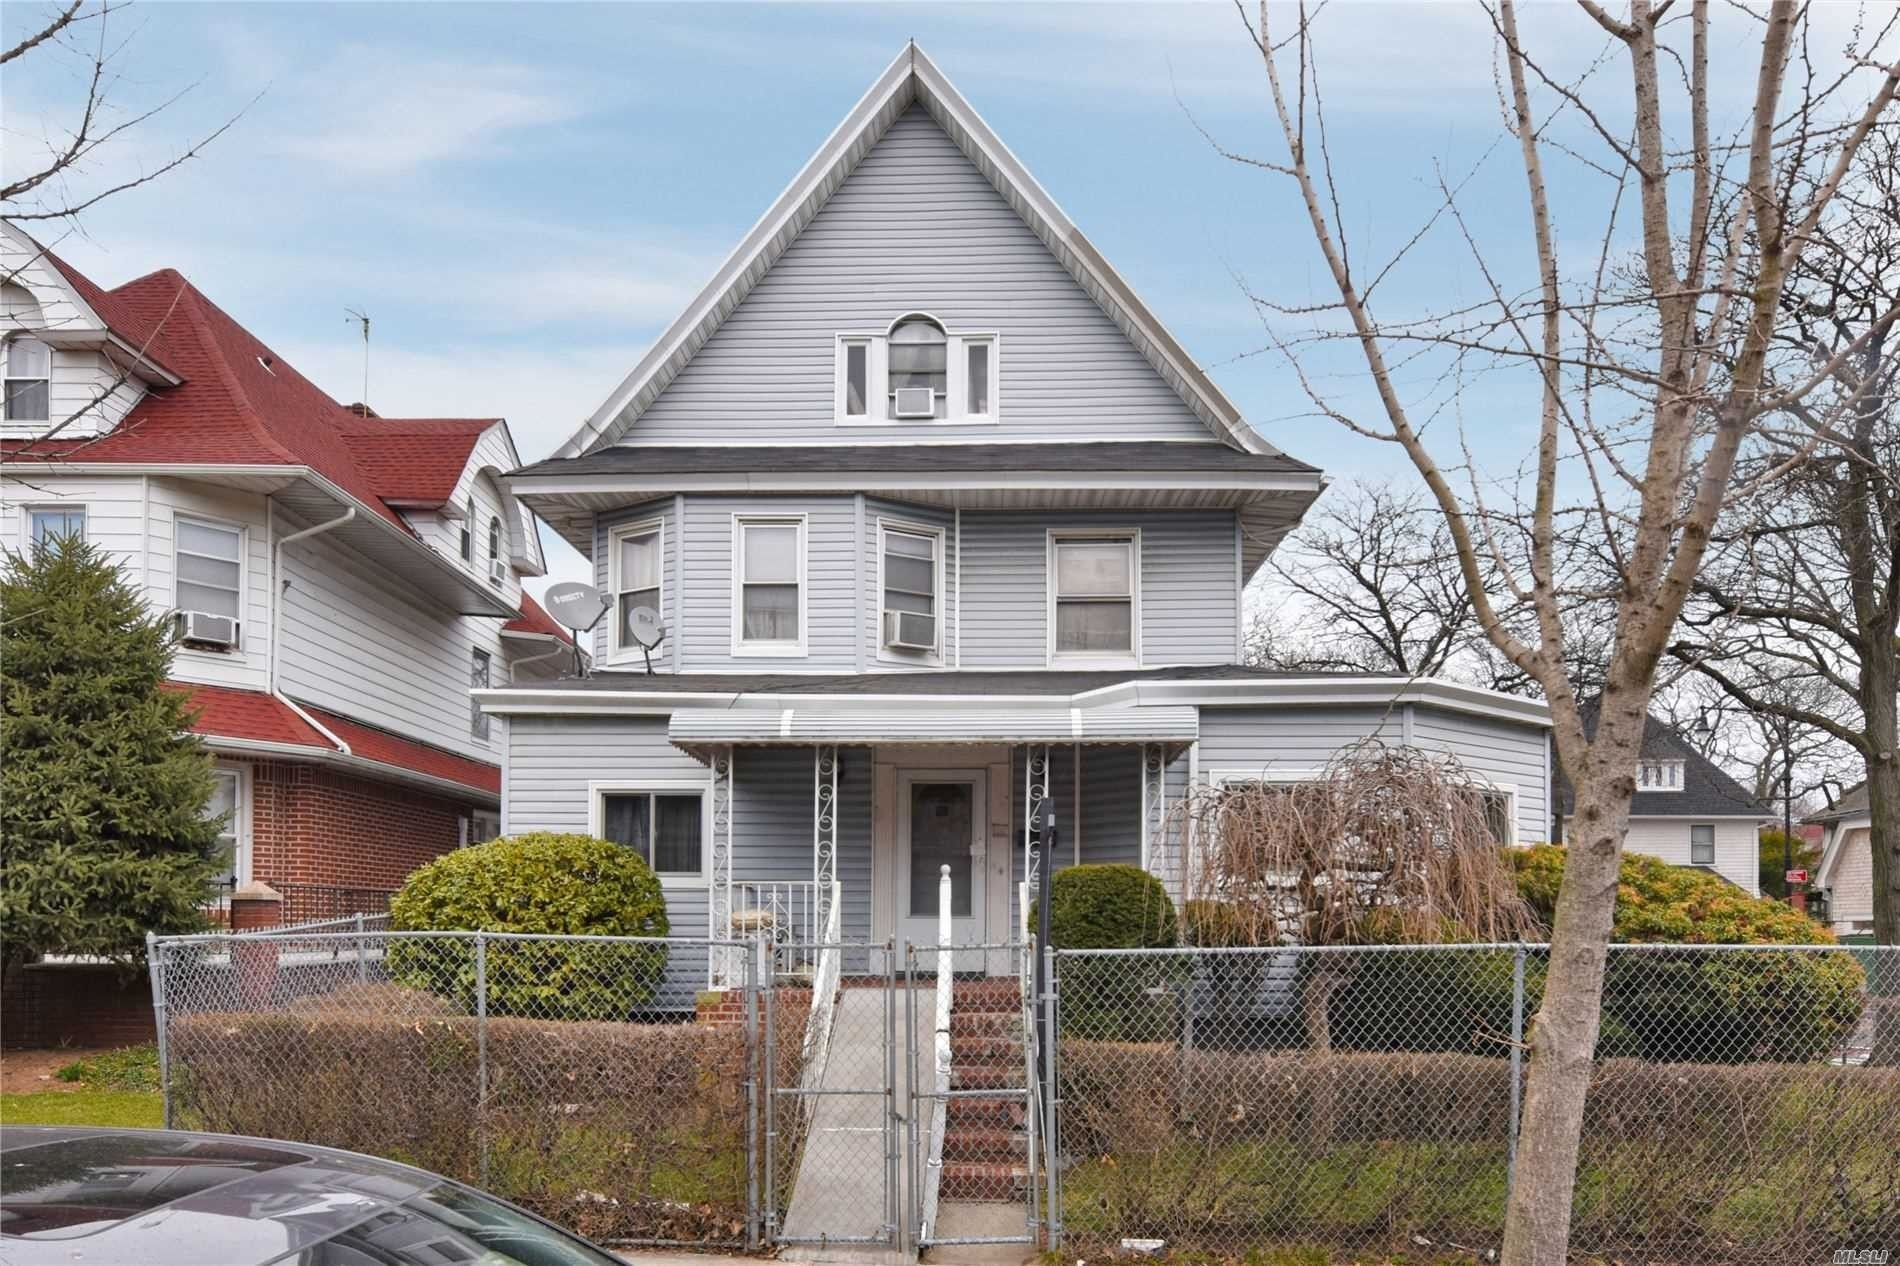 12. Single Family Homes for Sale at Prospect Park South, Brooklyn, NY 11226